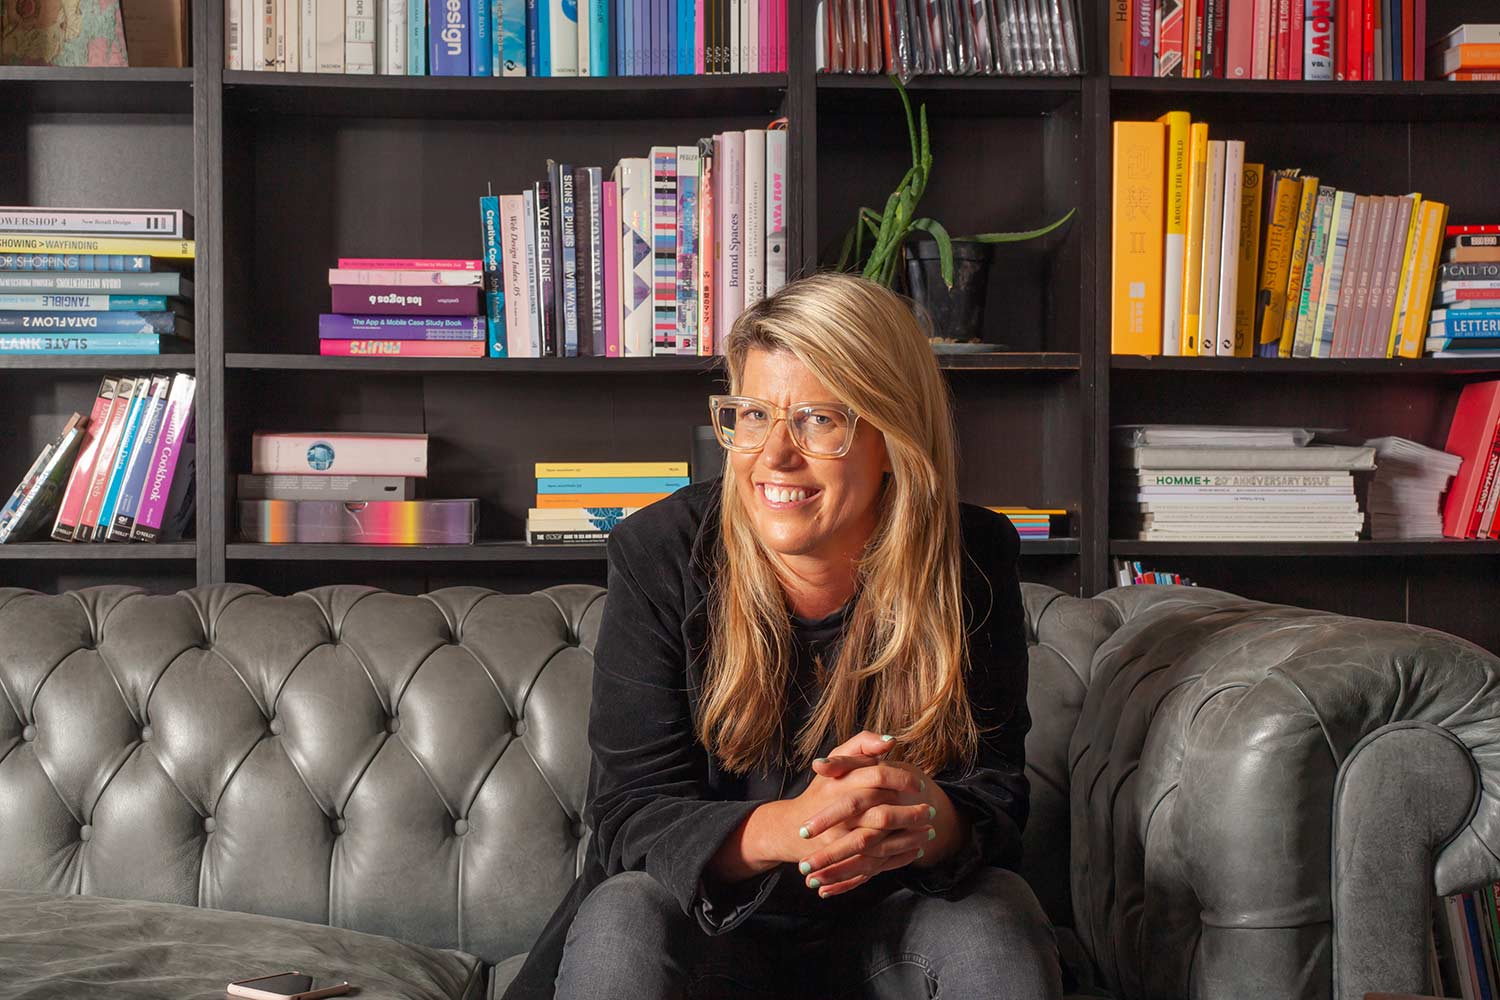 Pip Jamieson at The Dots office. All photos by me.